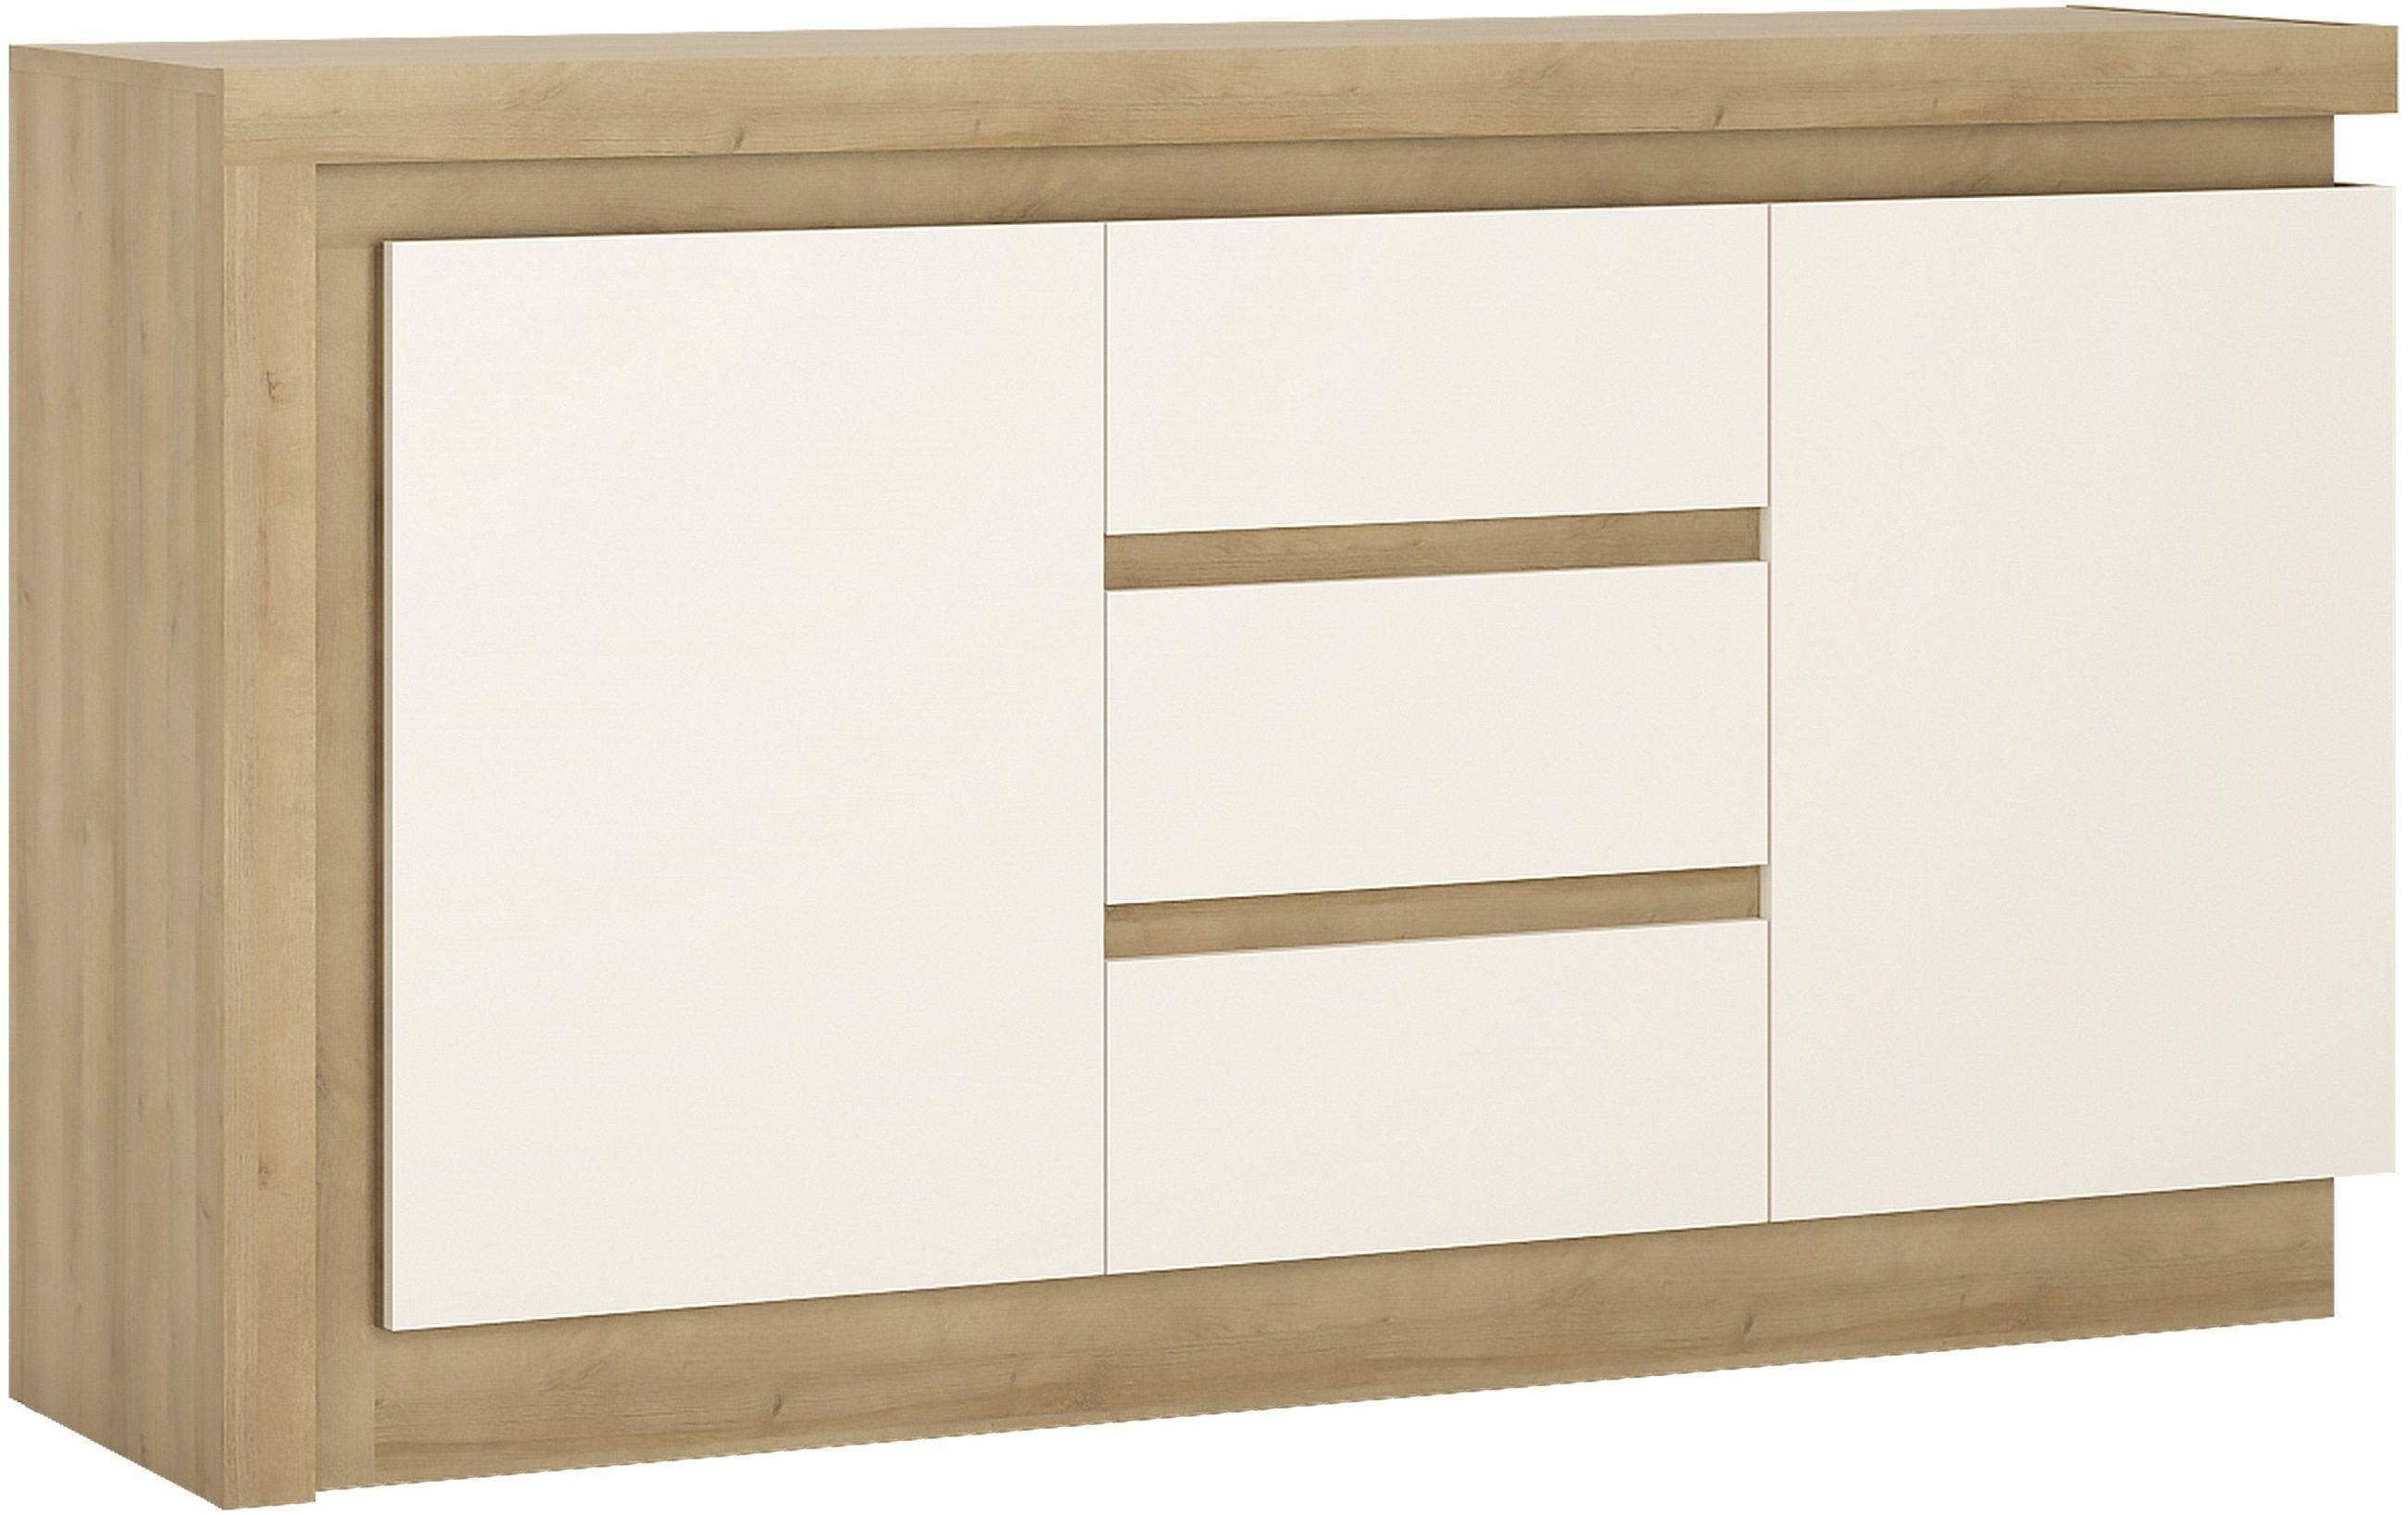 Buy Lyon Riviera Oak And White High Gloss Sideboard - 2 Door 3 throughout White High Gloss Sideboards (Image 6 of 30)